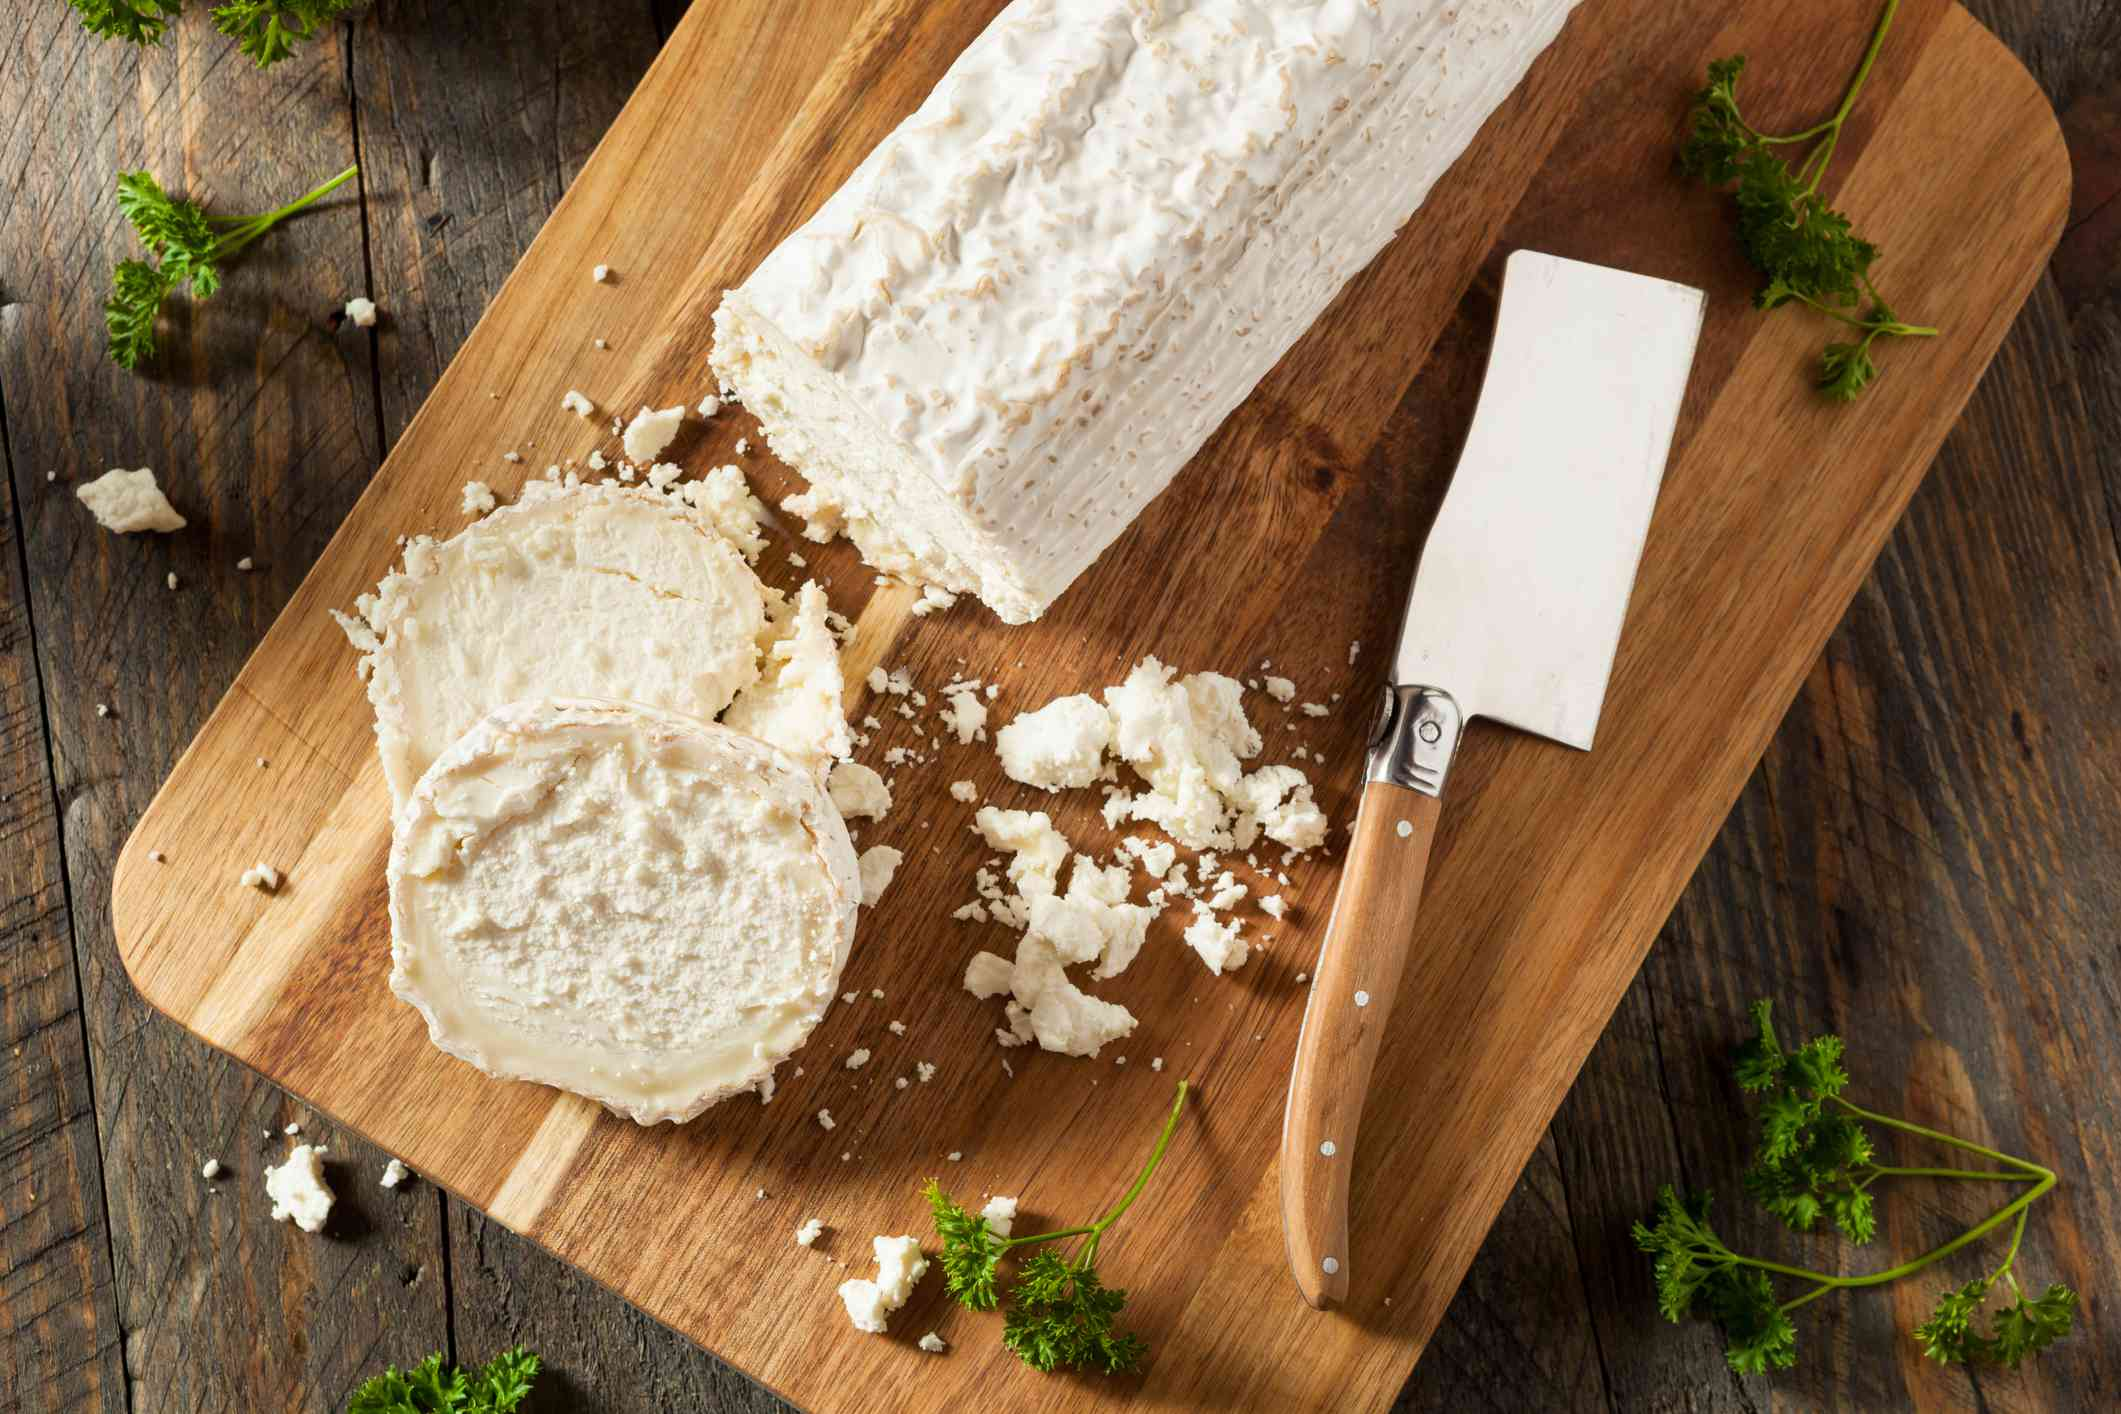 Goat cheese on a cutting board with a knife.